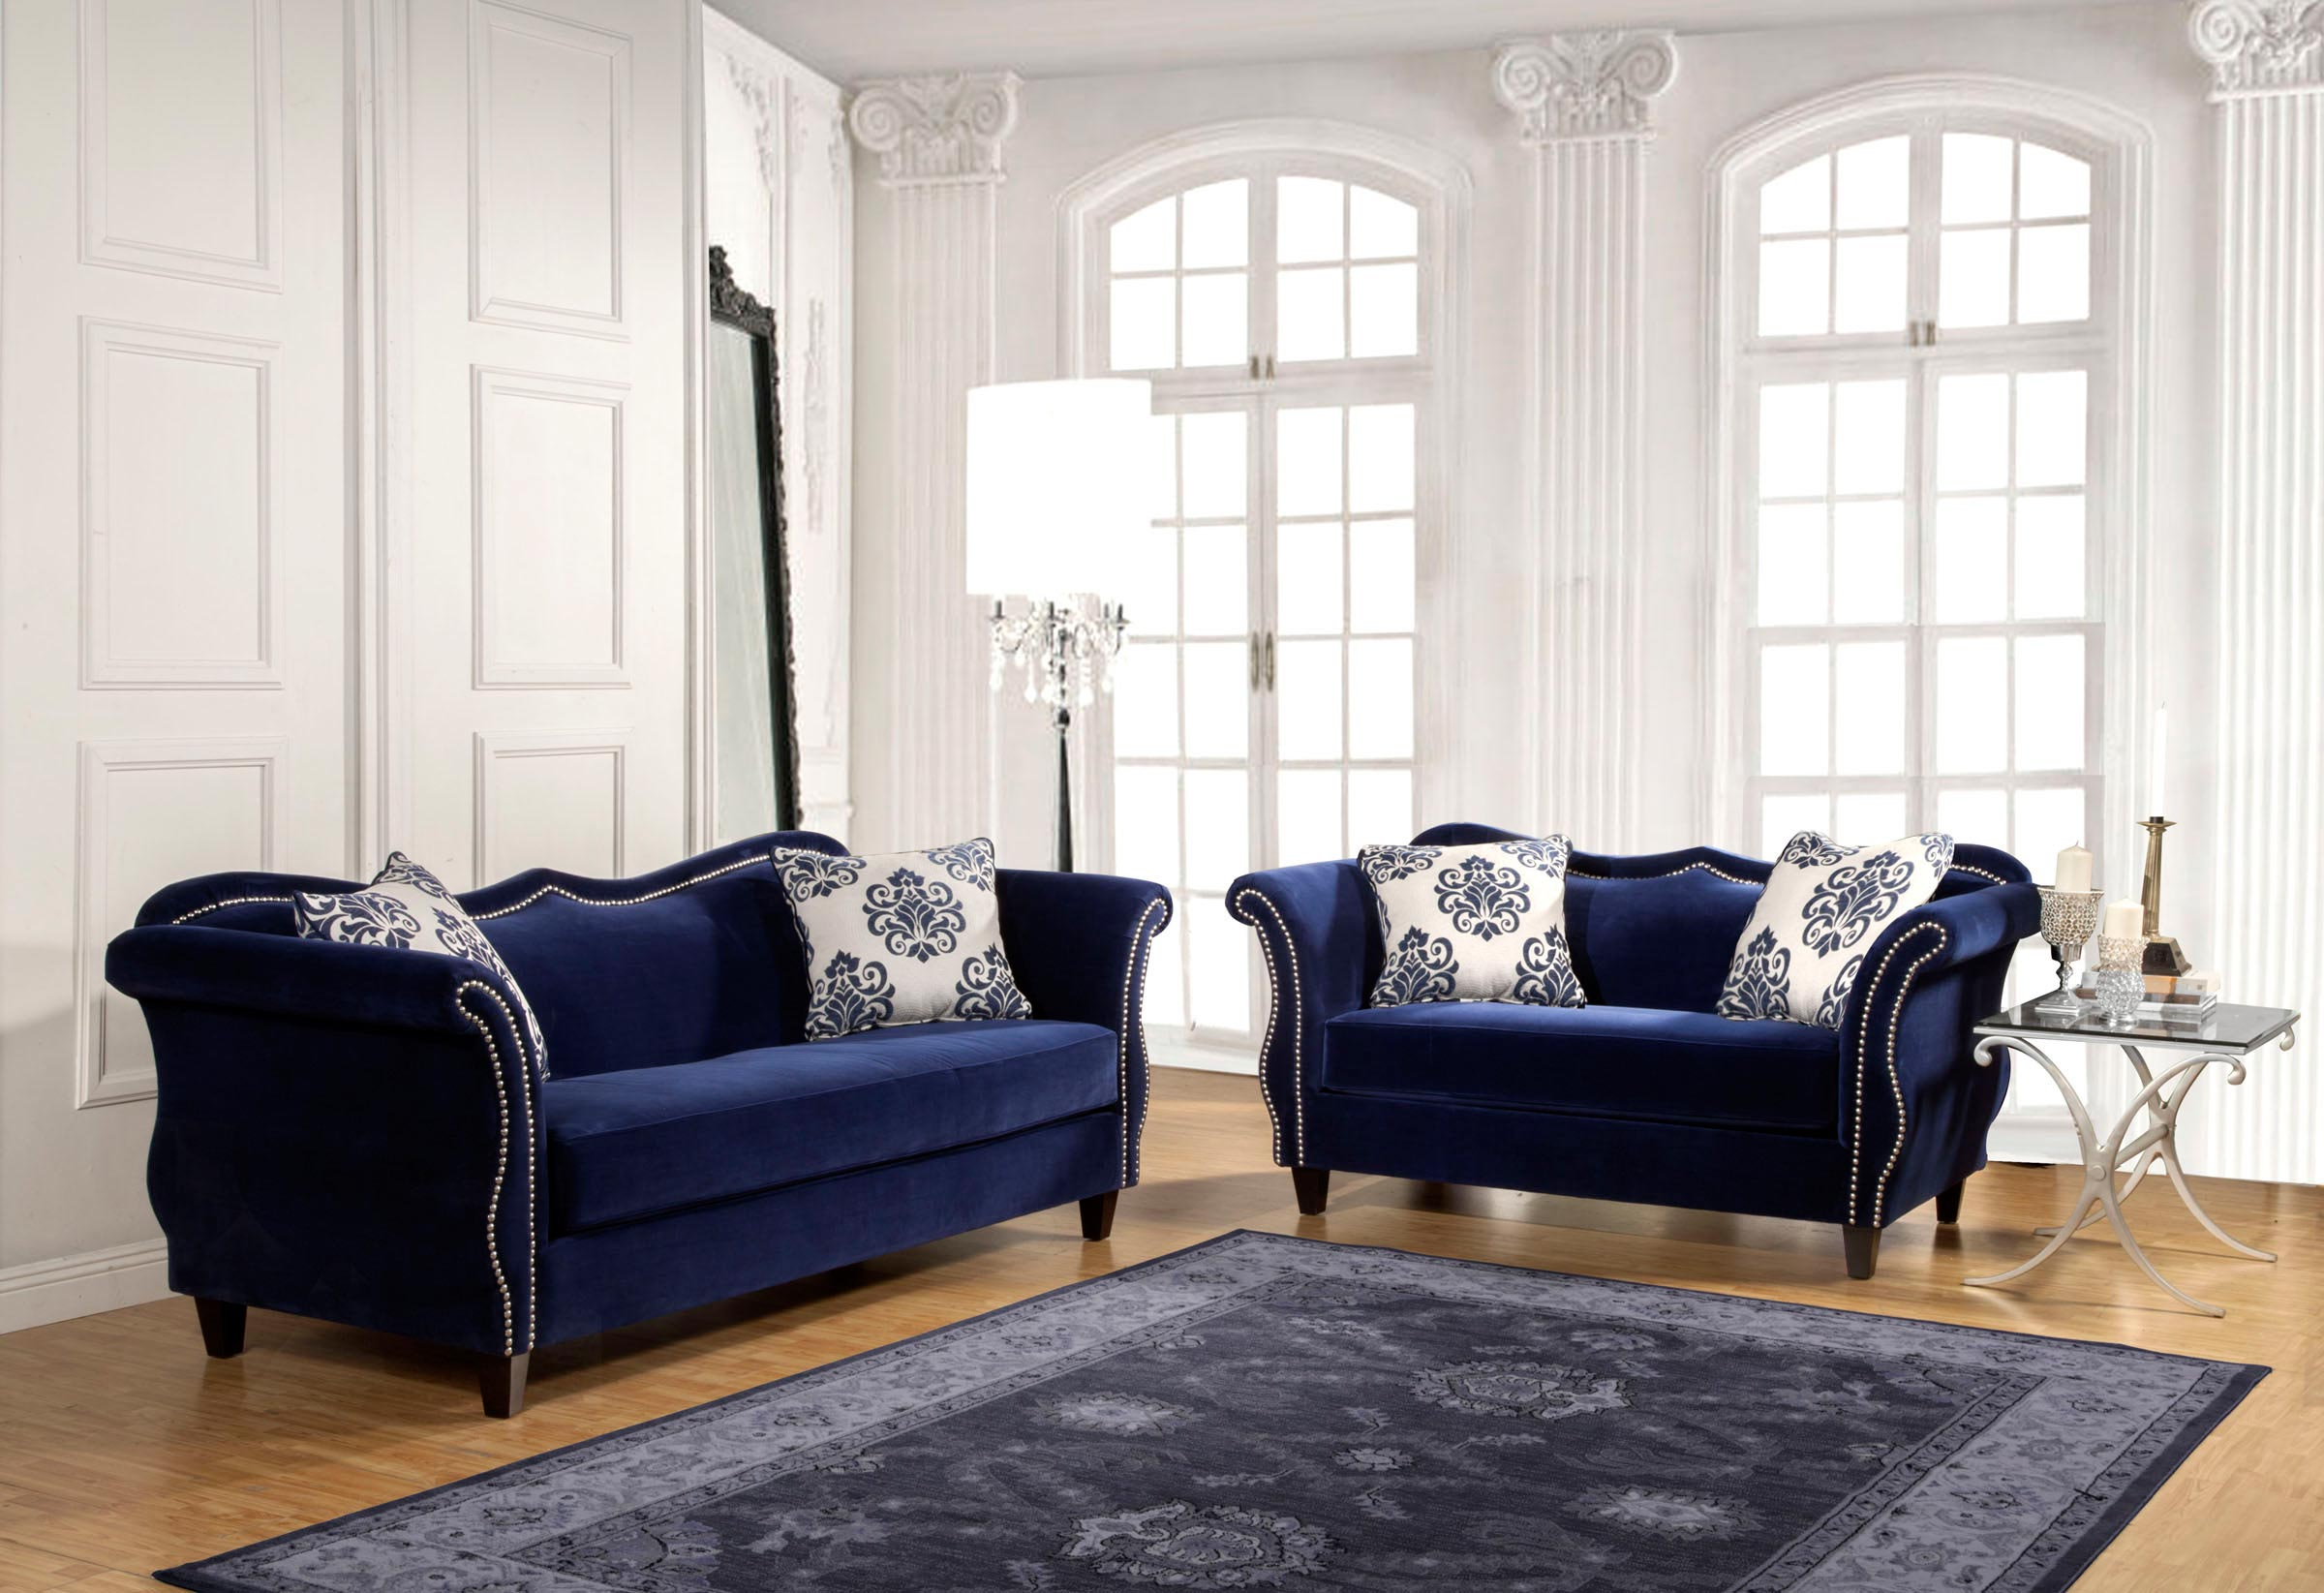 home living room 2 pcs royal blue sofa set